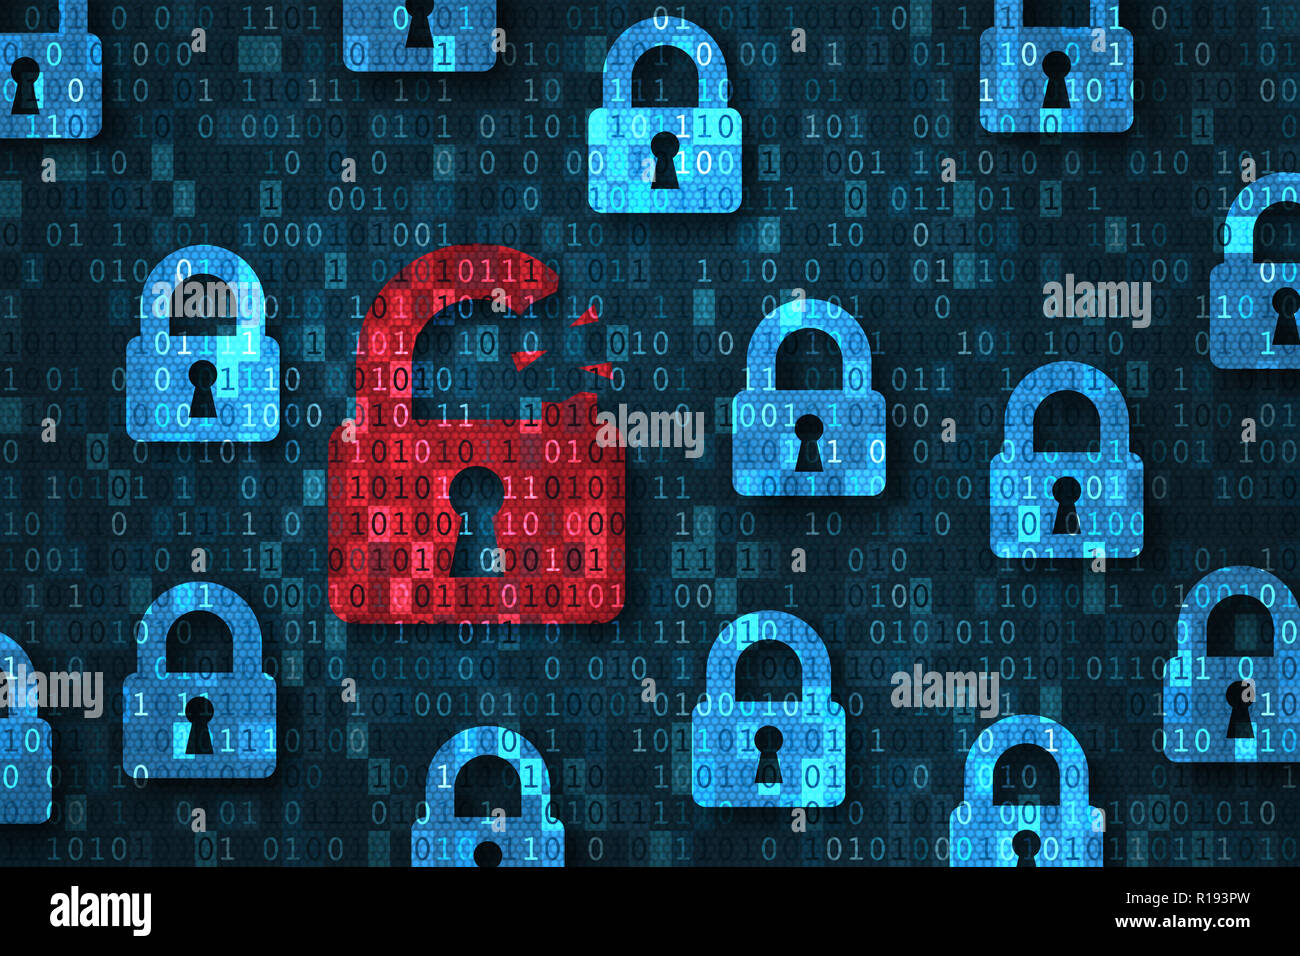 Security breach, system hacked alert with red broken padlock icon showing unsecure data under cyberattack, vulnerable access, compromised password, vi - Stock Image